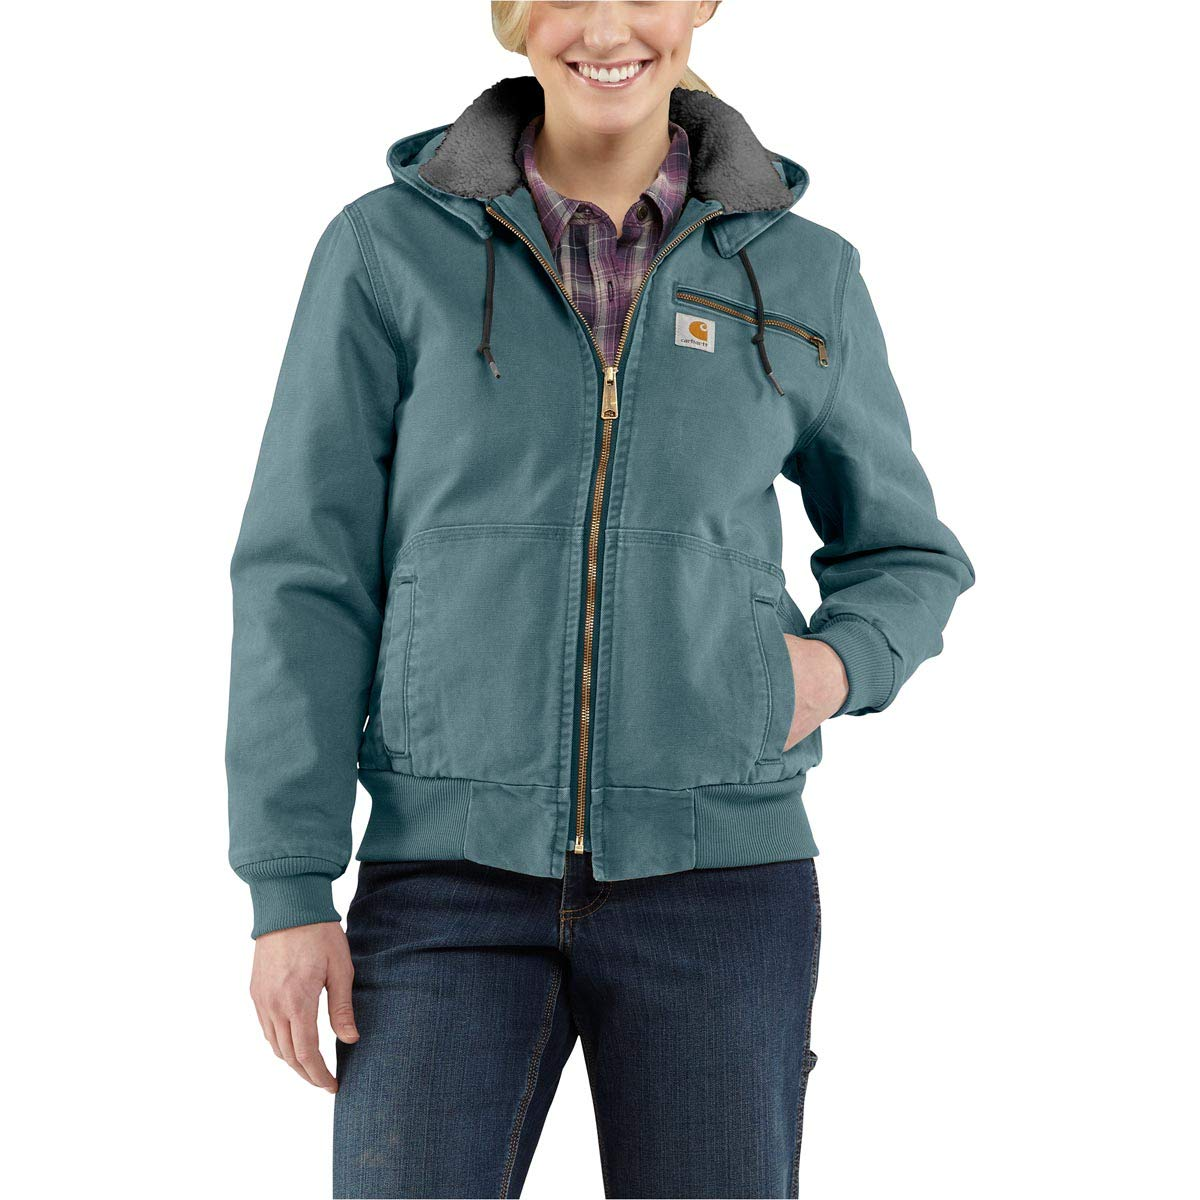 Carhartt Women's Wildwood Jacket, Sea Glass, Large by Carhartt